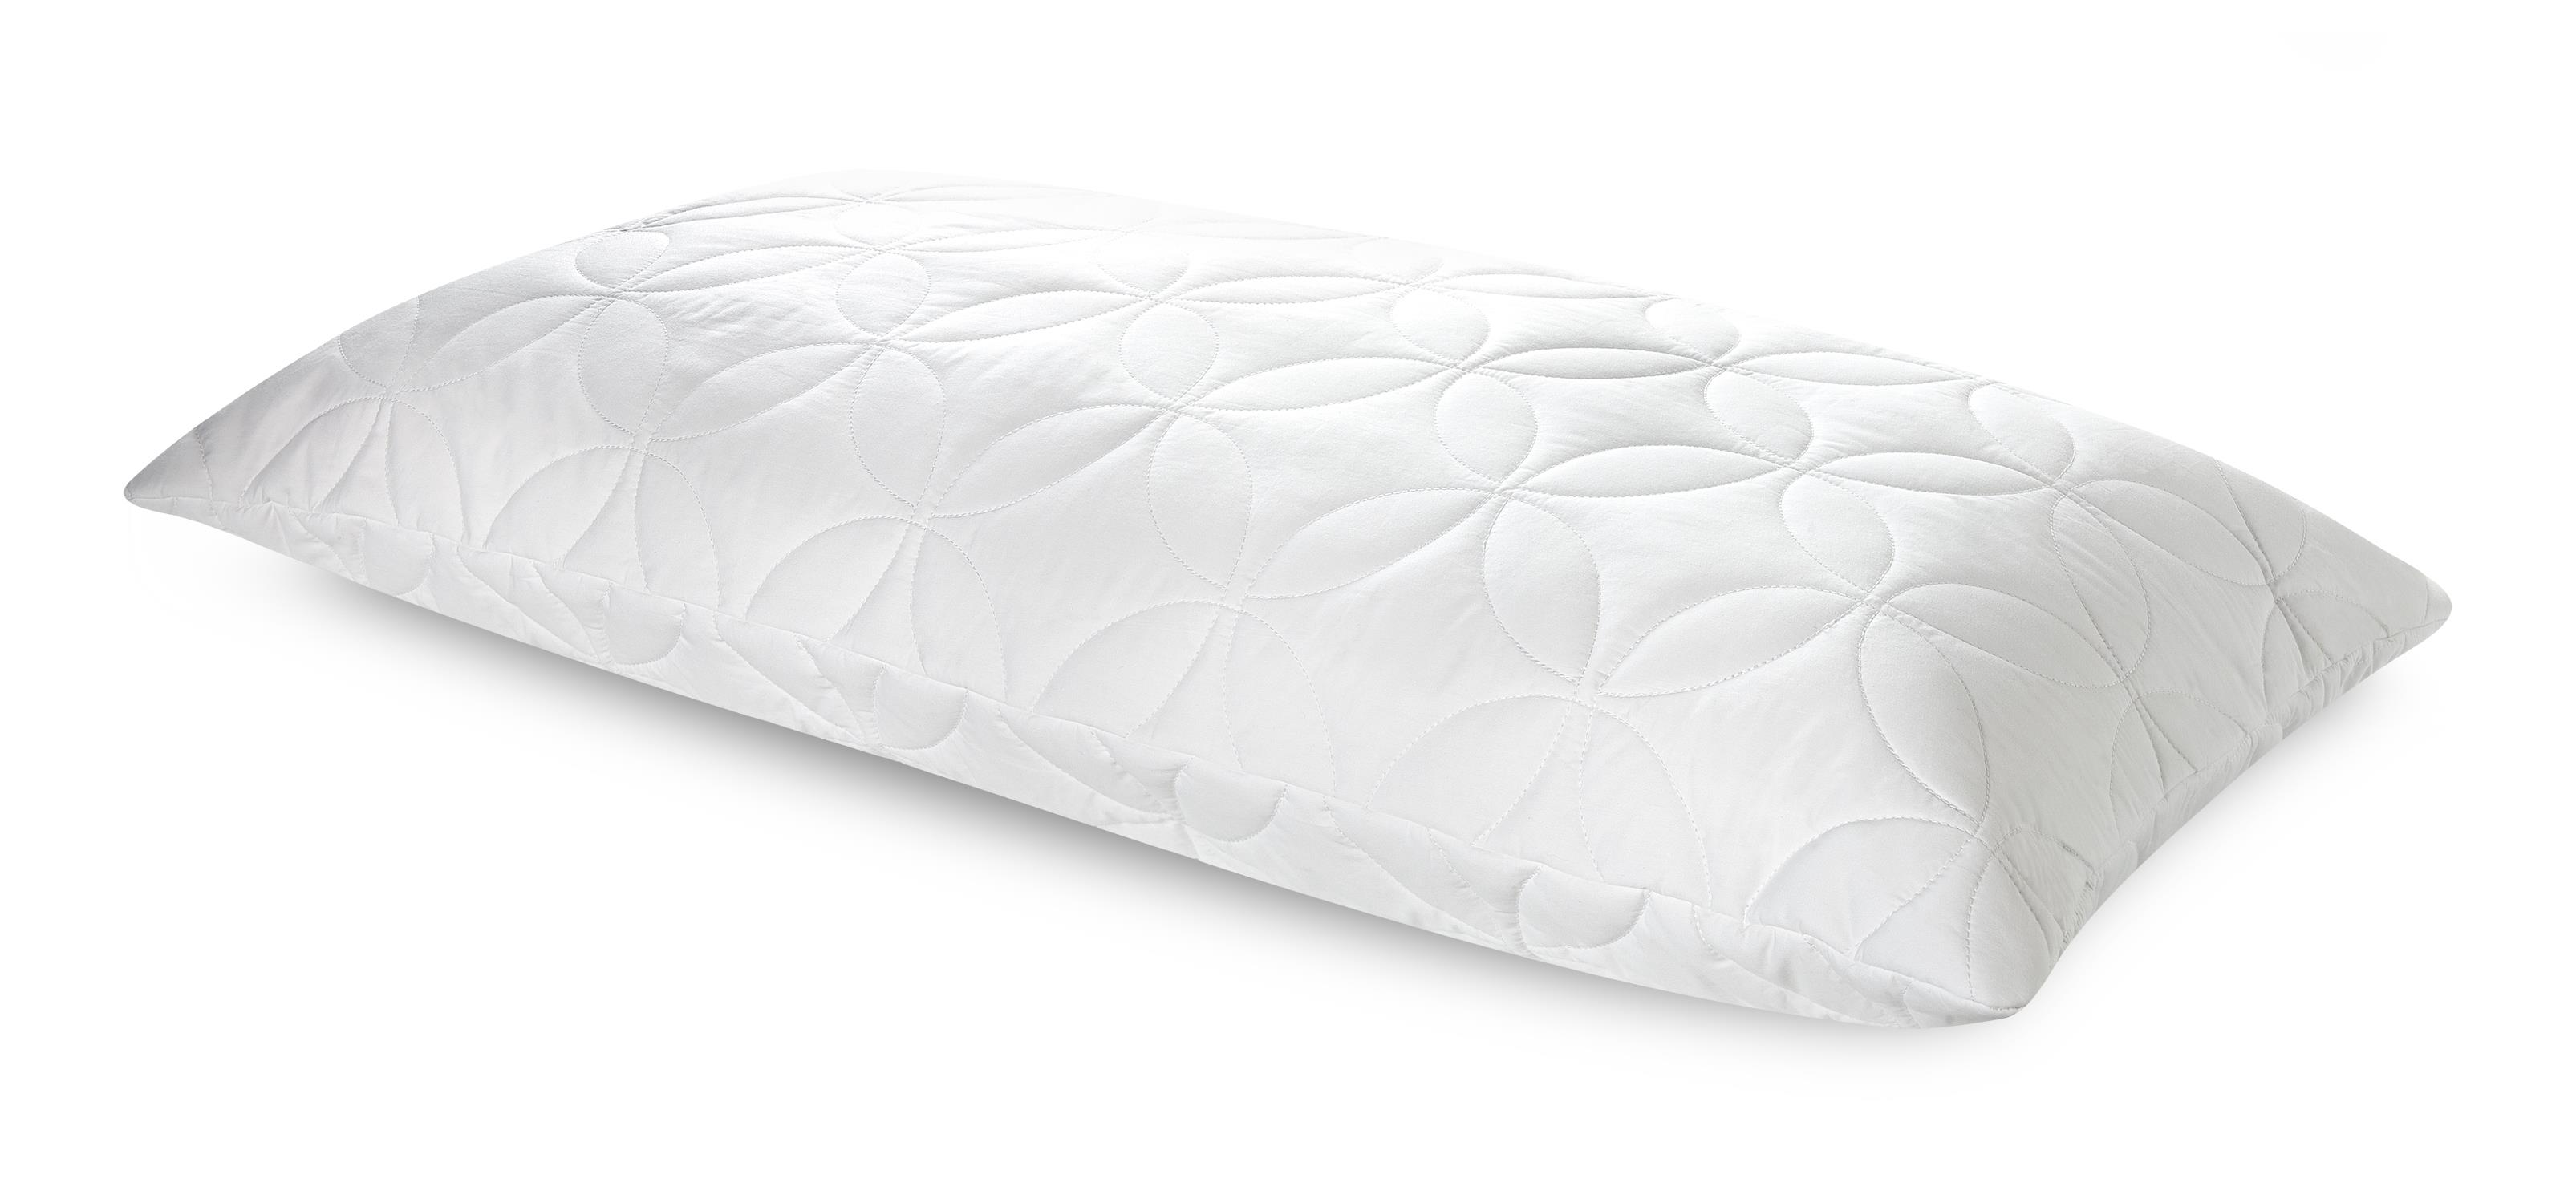 King Tempur-Cloud Soft & Conforming Pillow